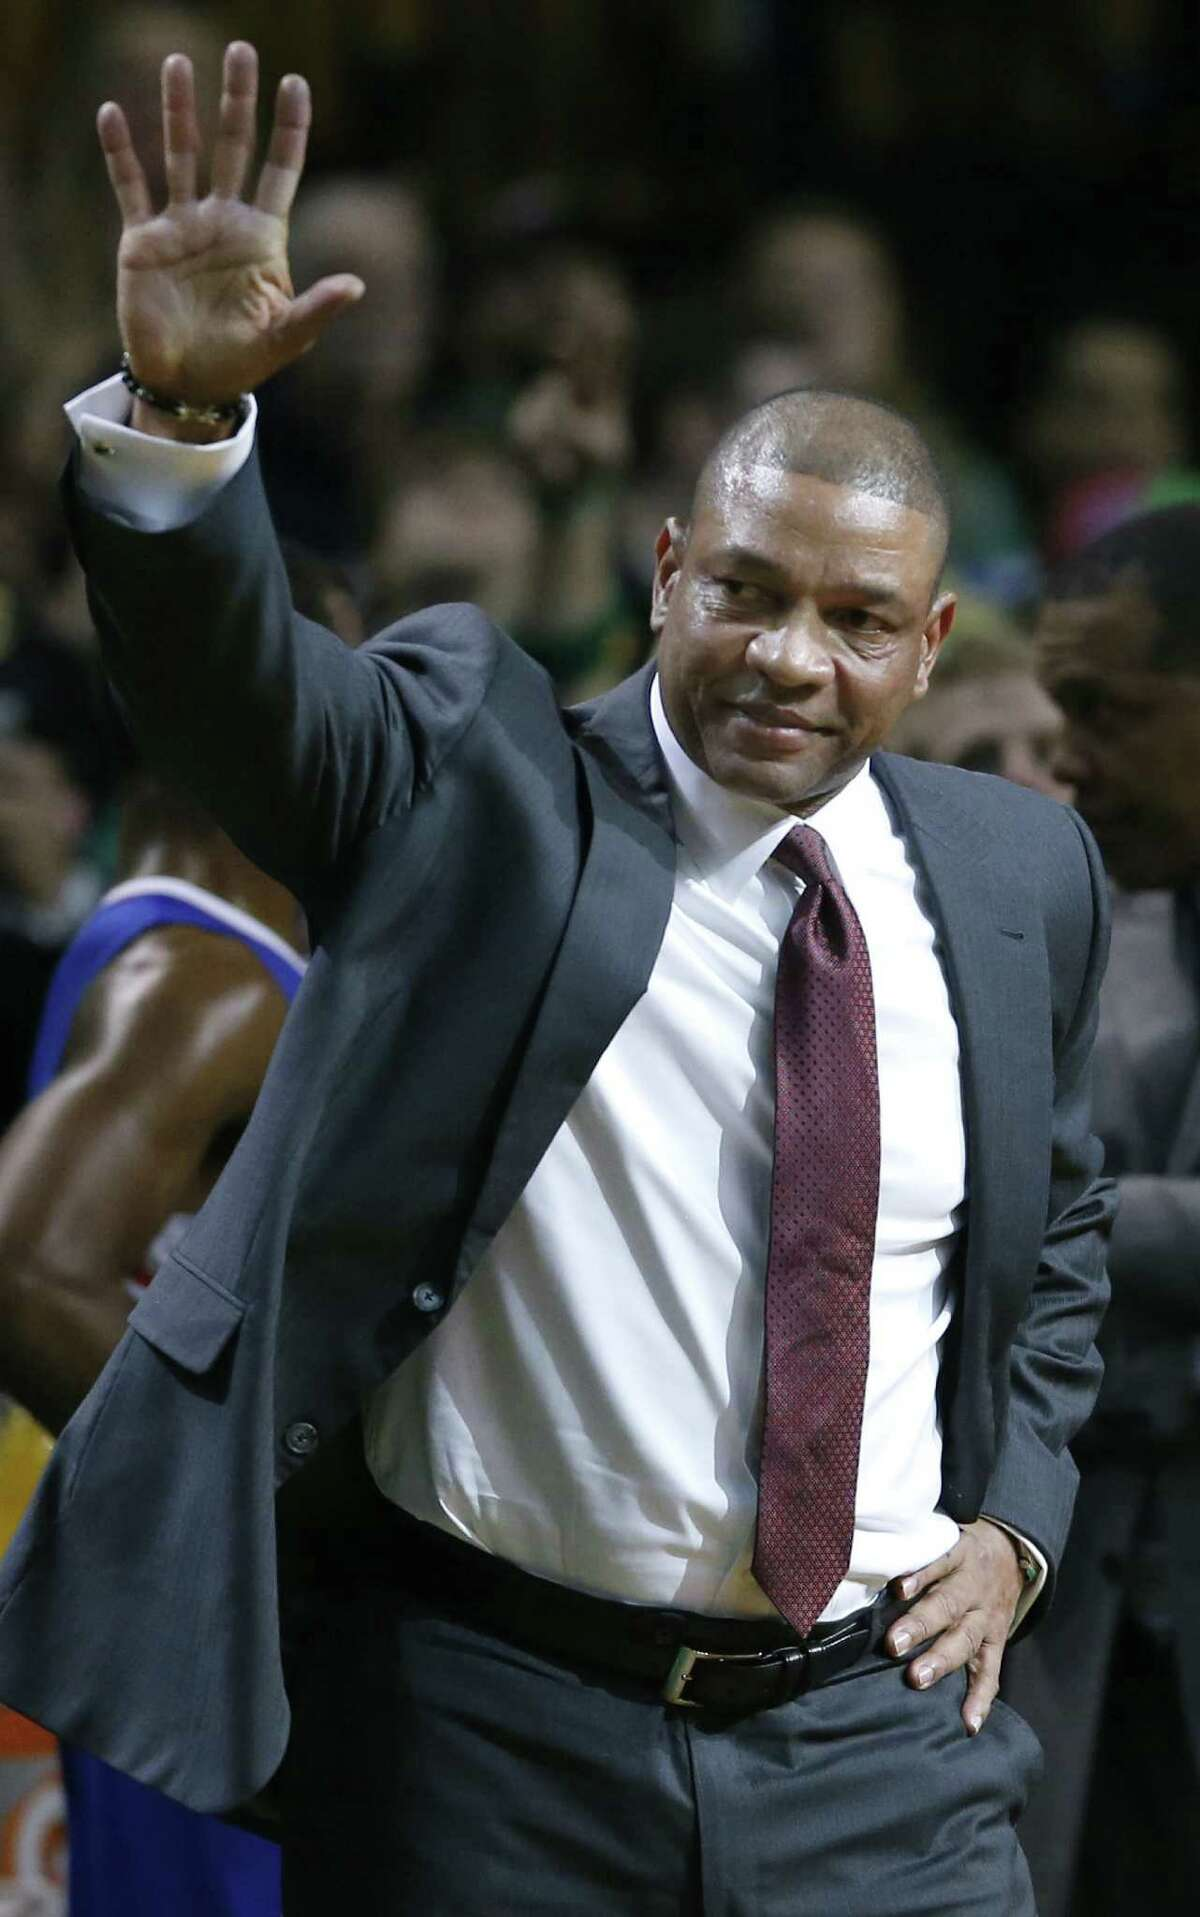 Clippers coach Doc Rivers, formerly of the Celtics, waves during a video tribute in Boston.